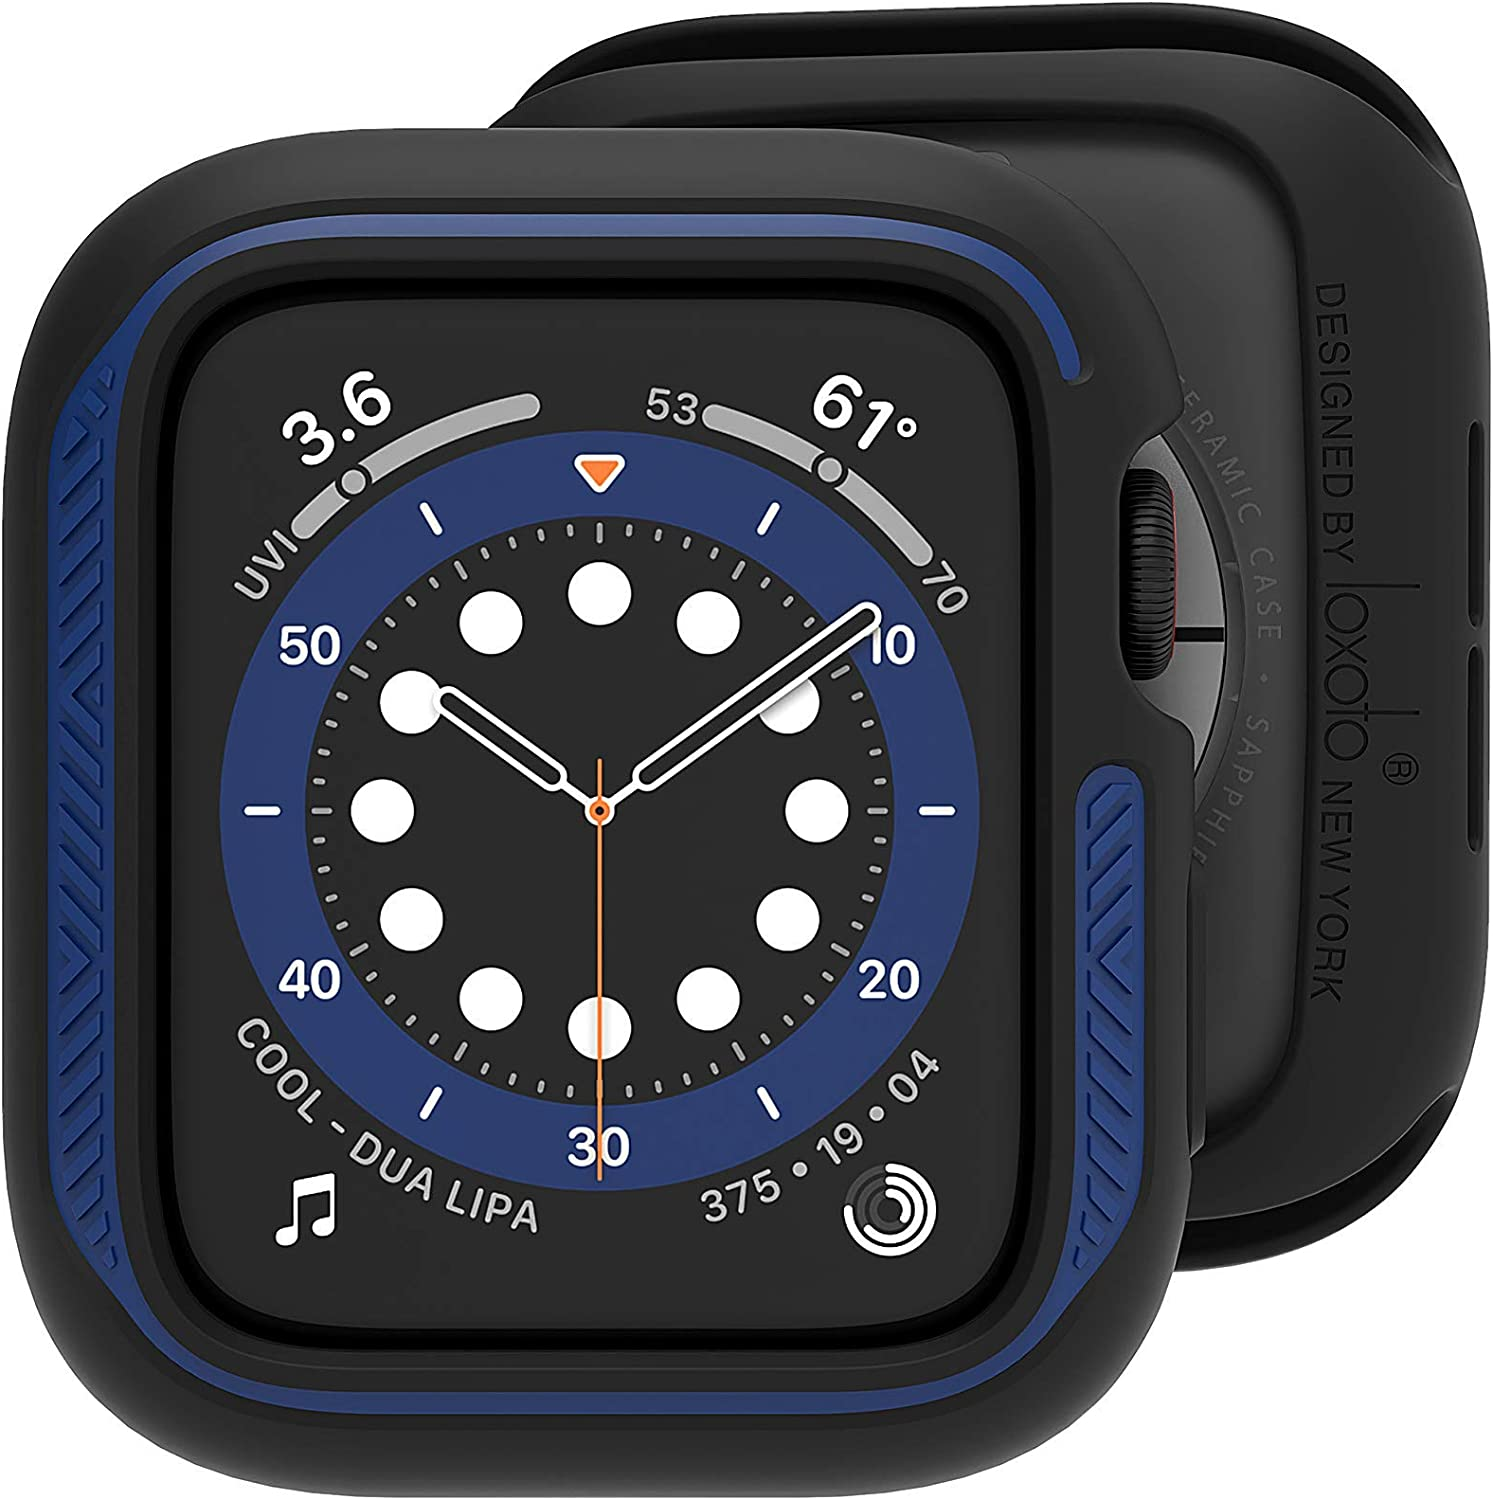 Compatible for Apple Watch Case 44mm, Loxoto Bicolor Bumper Case Cover Protective Drop Shock Resistant Case TPU Flexible Cover Fit for iWatch 6/SE/5/4 Stylish Design for Men Women (Black & Navy)